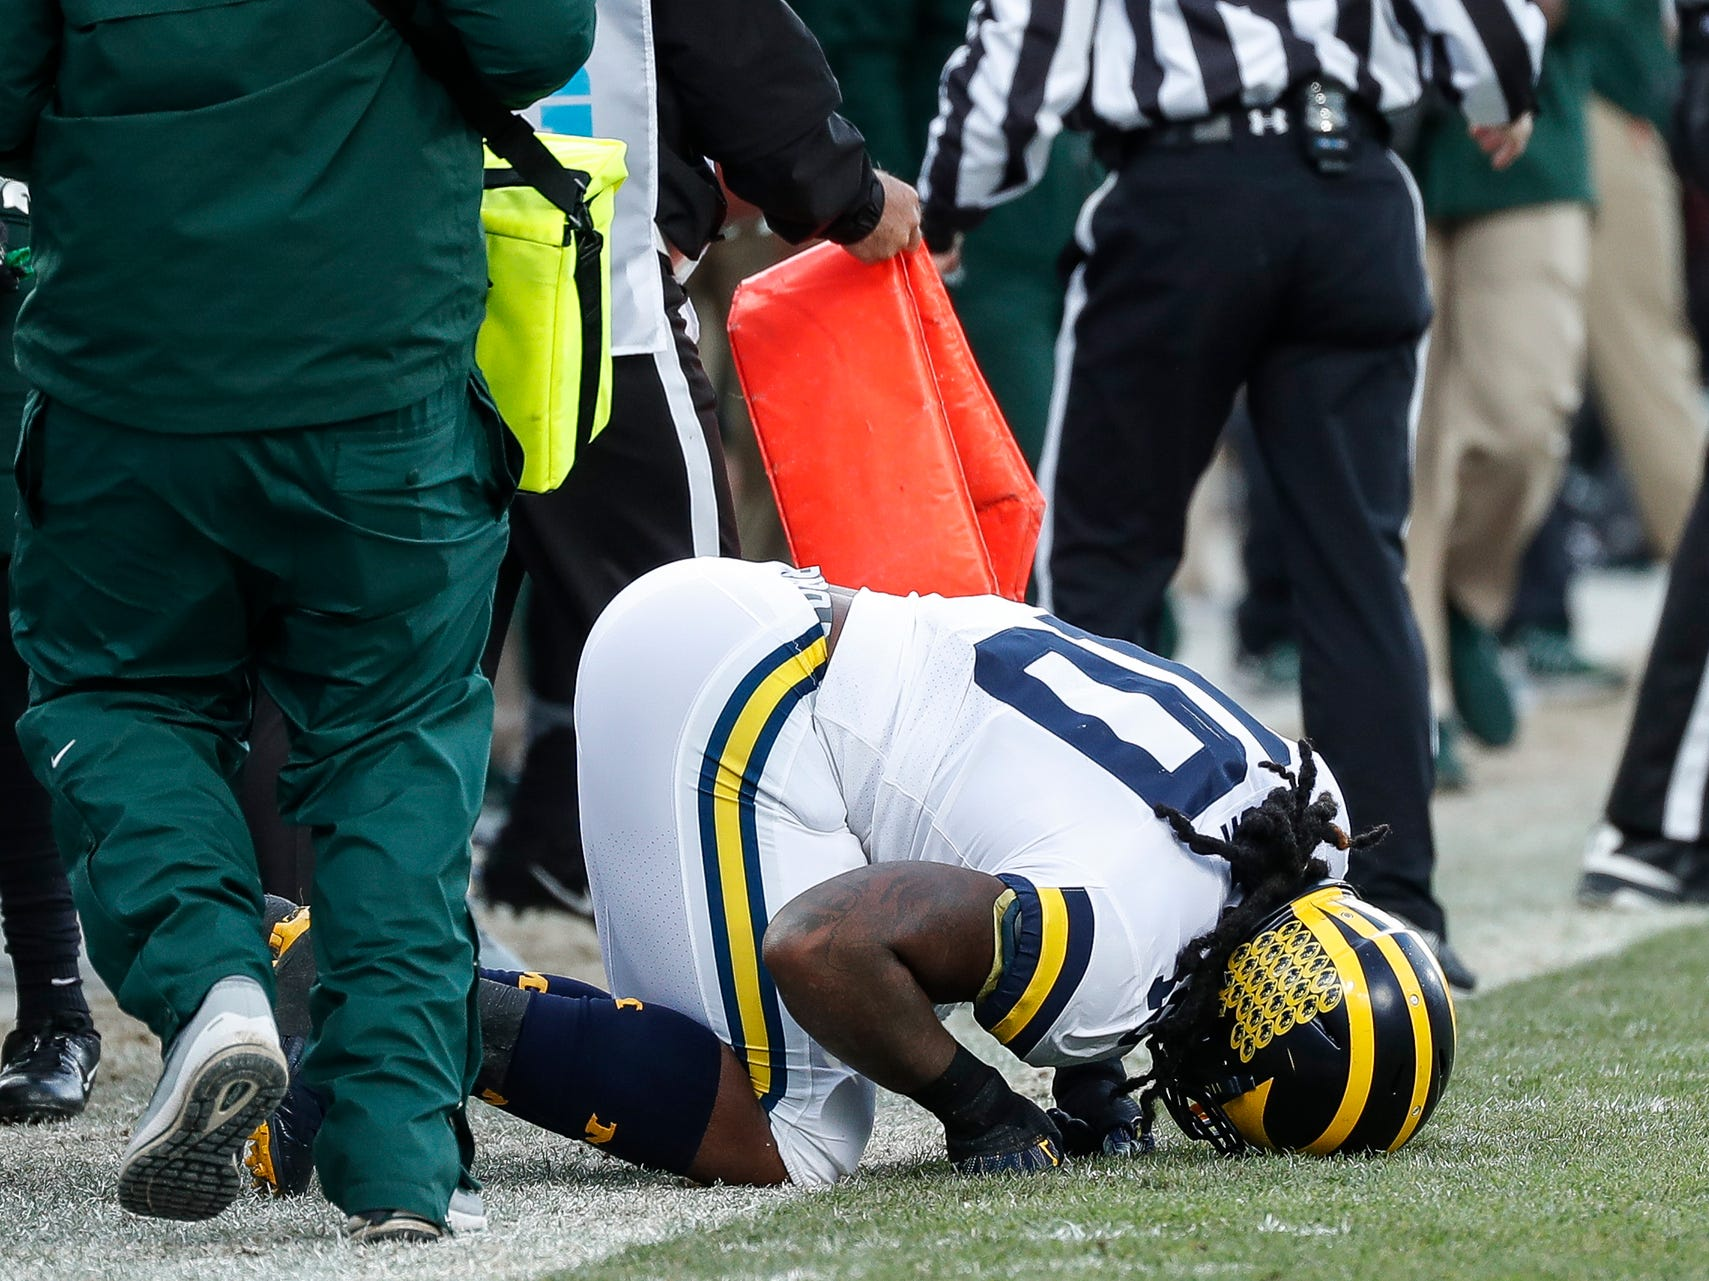 Michigan linebacker Devin Bush stays on the ground after tackling Michigan State running back LJ Scott during the first half at Spartan Stadium on Saturday, Oct. 20, 2018.